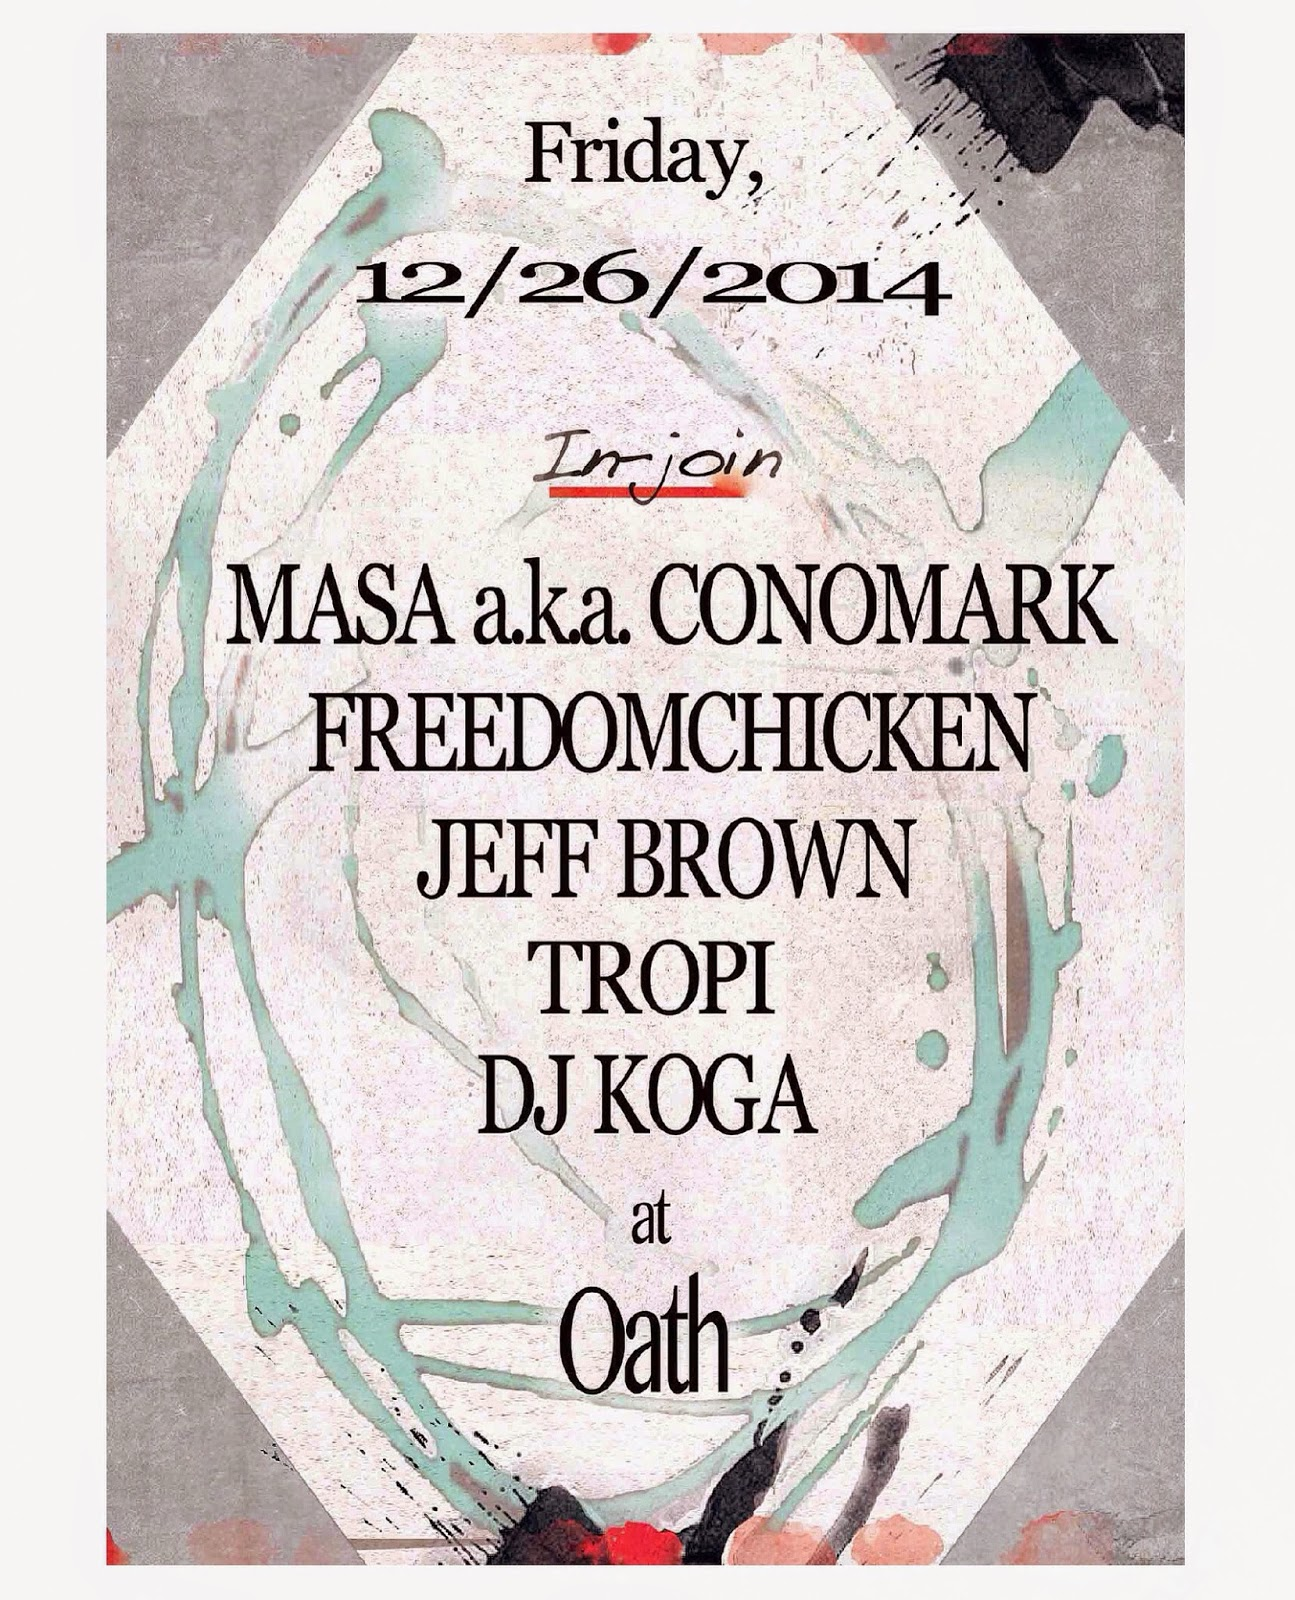 Masa aka Conomark Freedomchicken (JazzySport/14cat/DW79s) Jeff Brown (making' it on fragments) Tropi DJ KOGA (JazzySport/14cat/DW79)